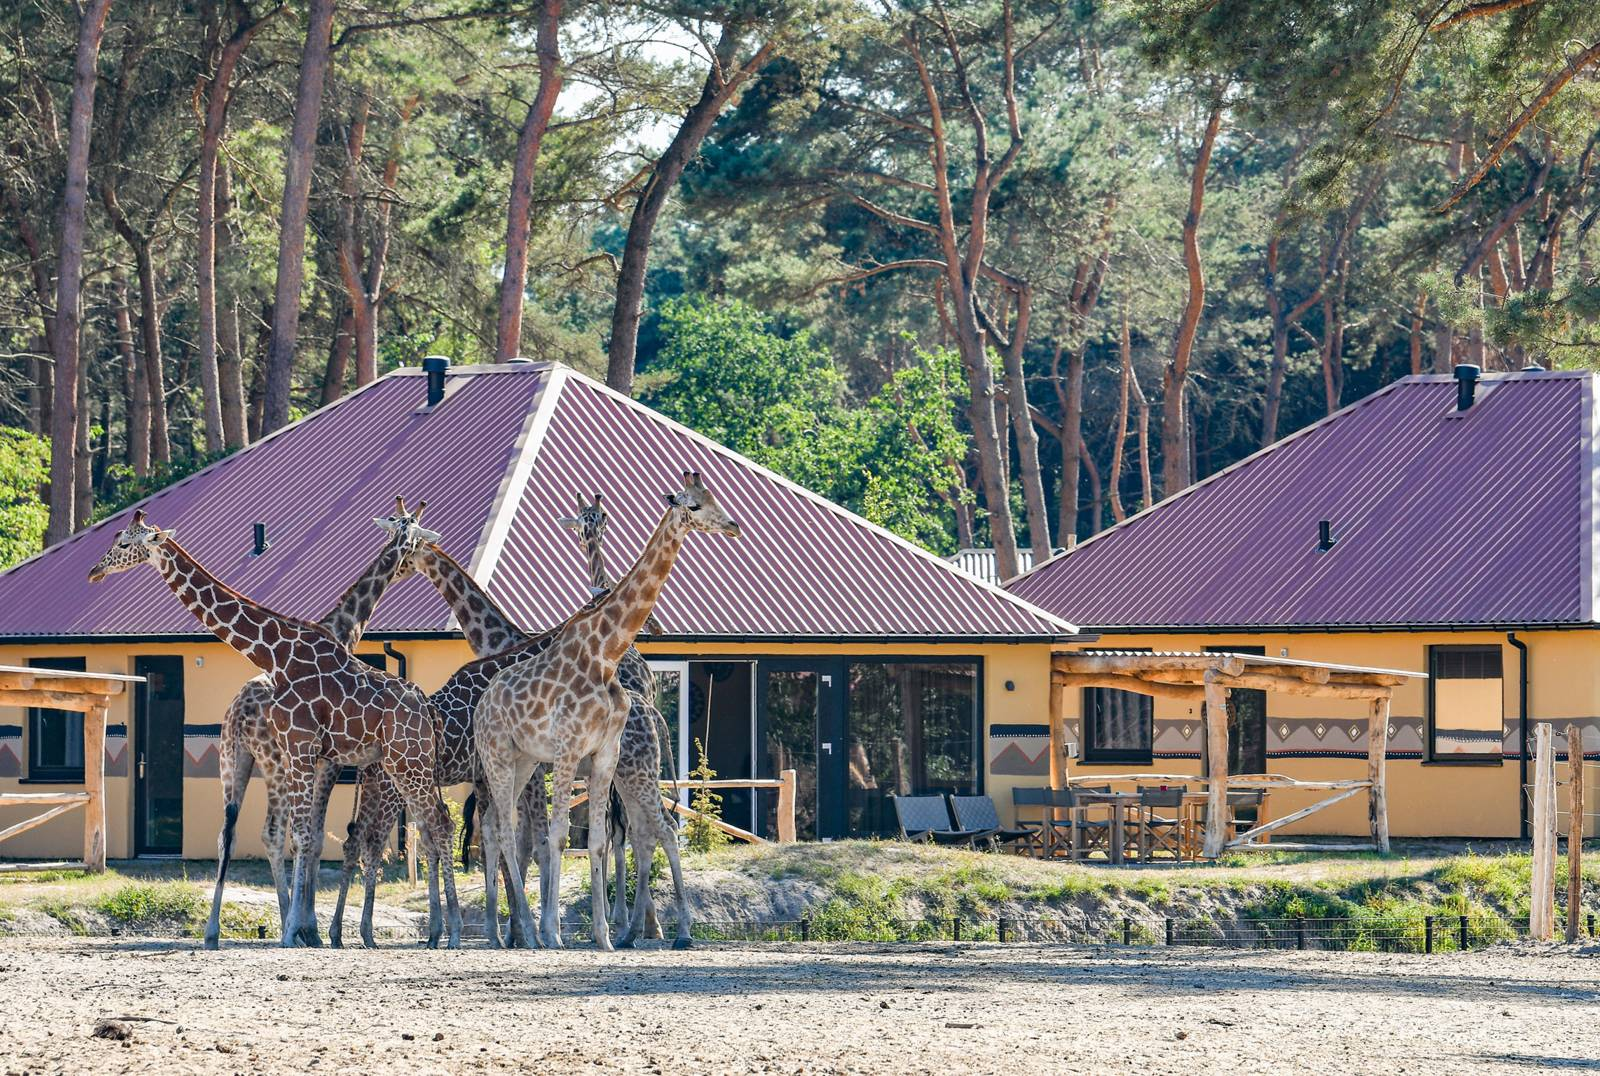 Beekse Bergen Safari Resort